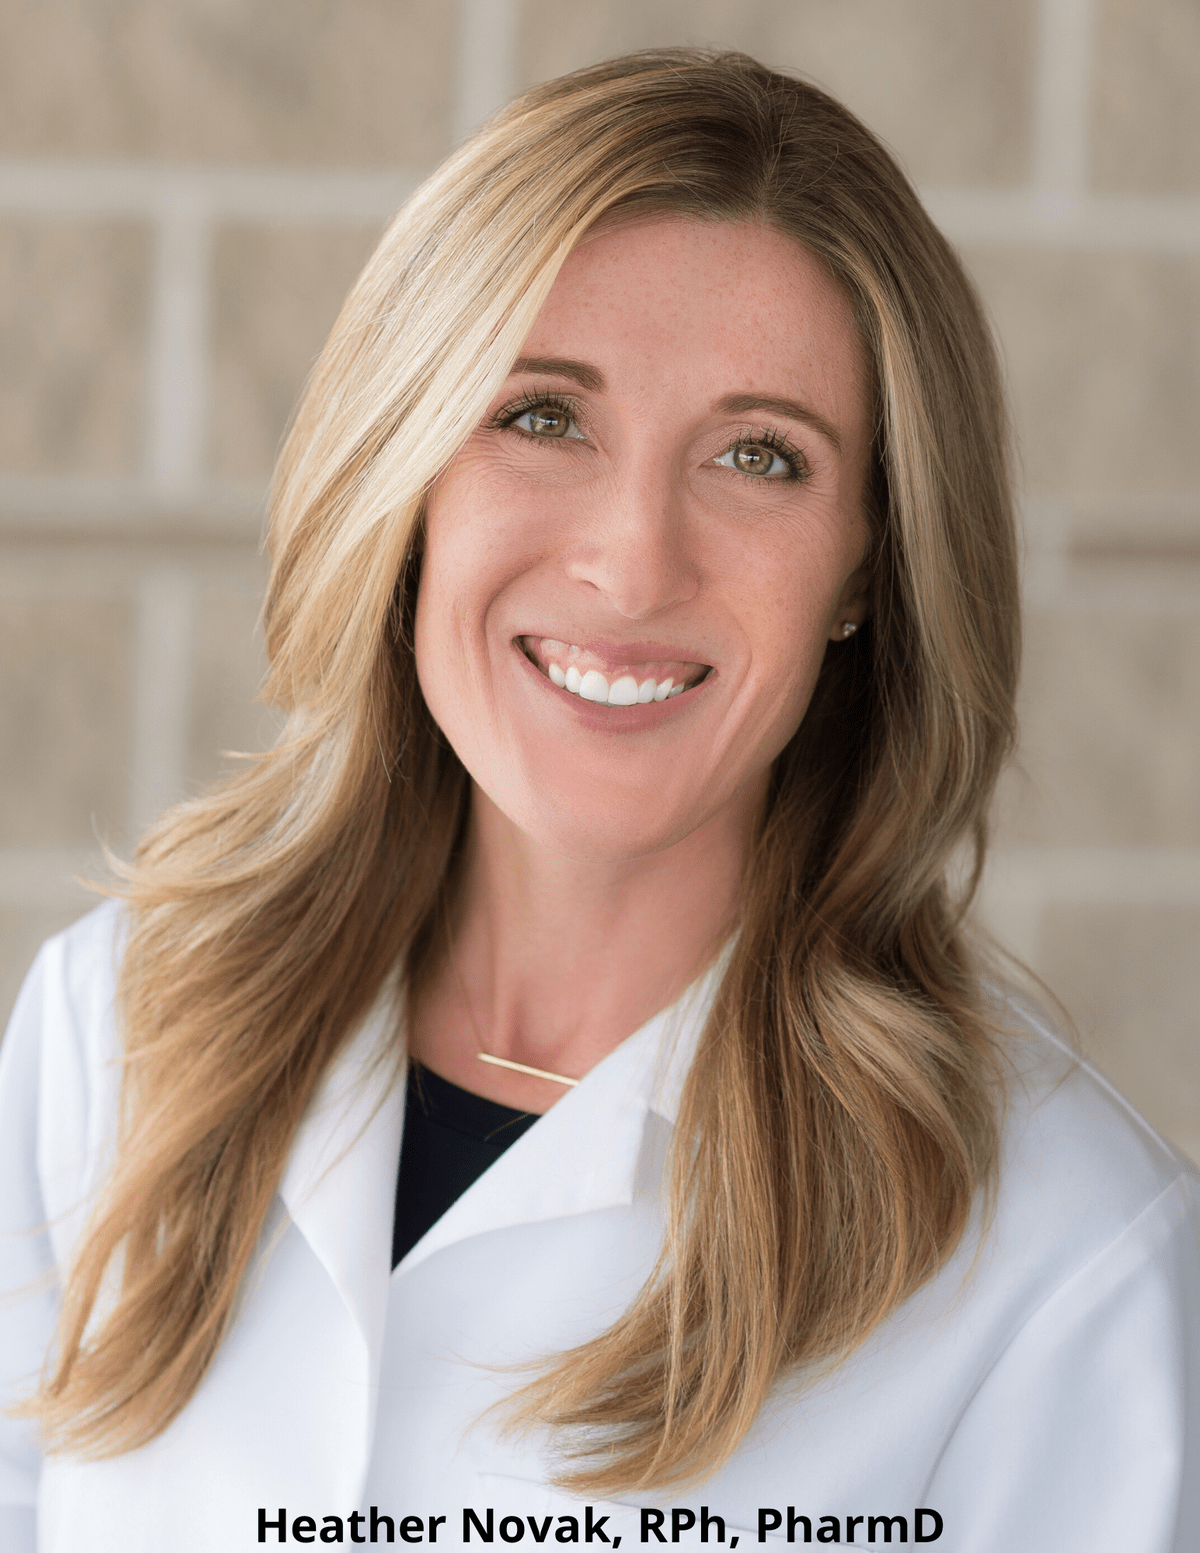 Heather Novak, RPh, PharmD, Hormone and Wellness Specialist Pharmacist